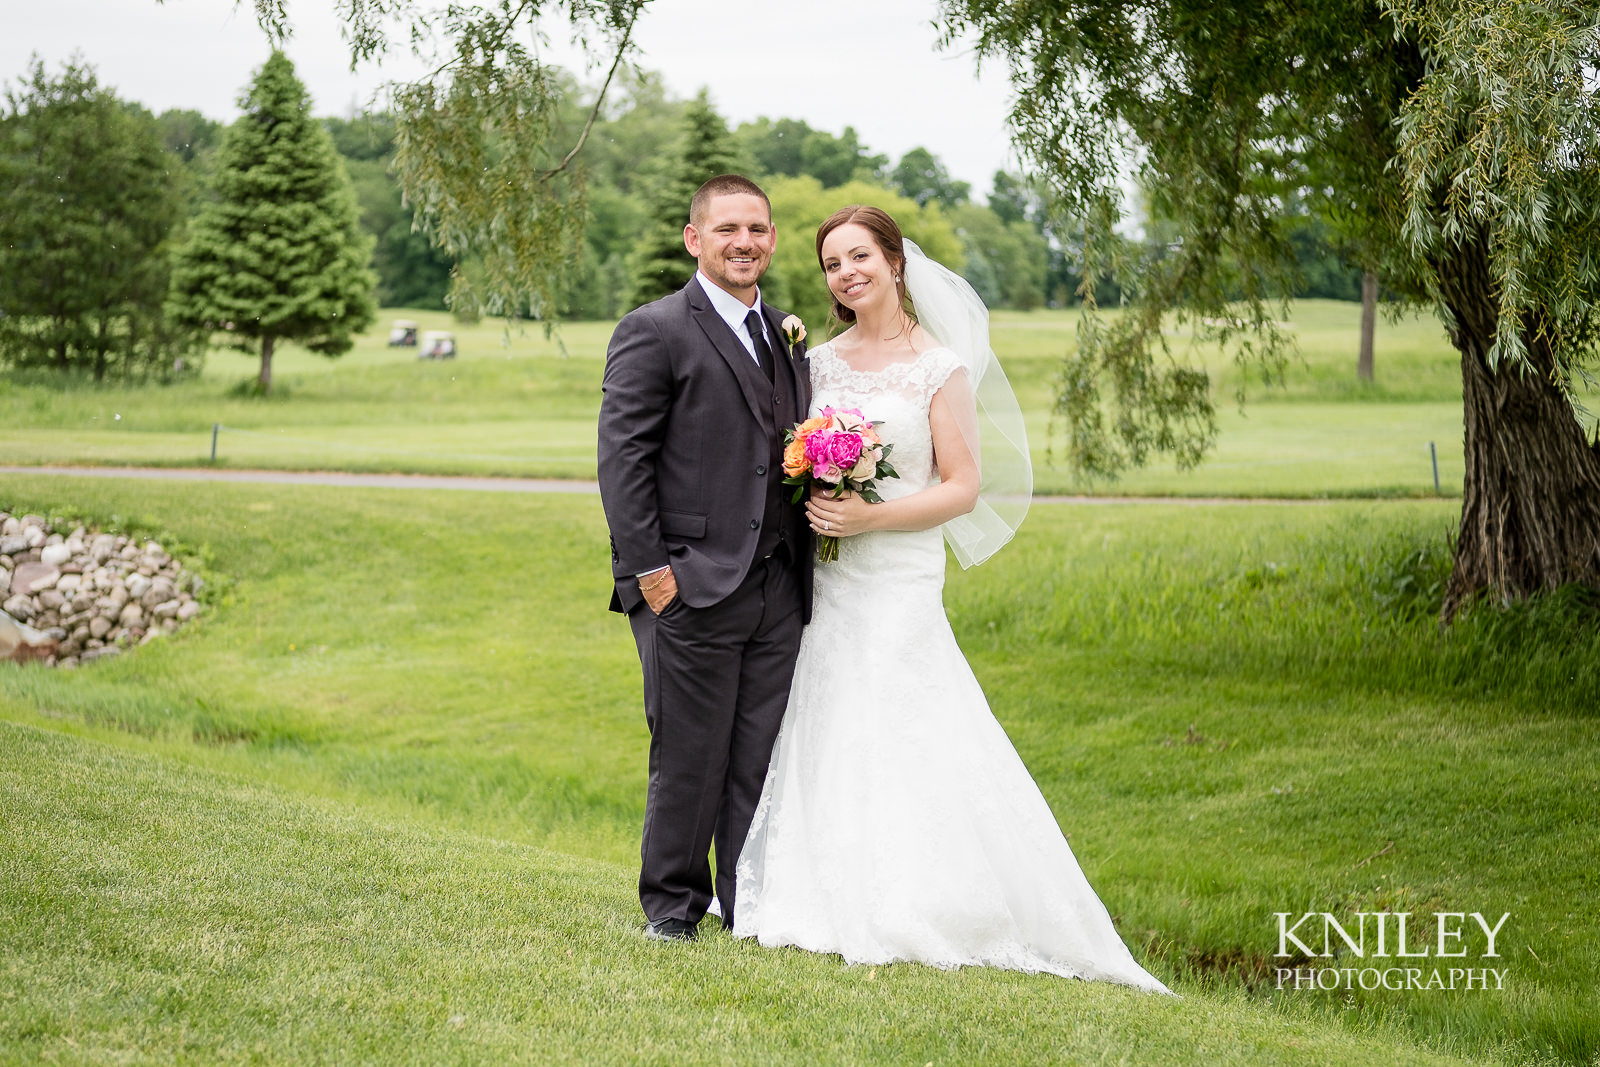 068 - Ravenwood Golf Club wedding pictures - Rochester NY - Kniley Photography - XT2A1016.jpg